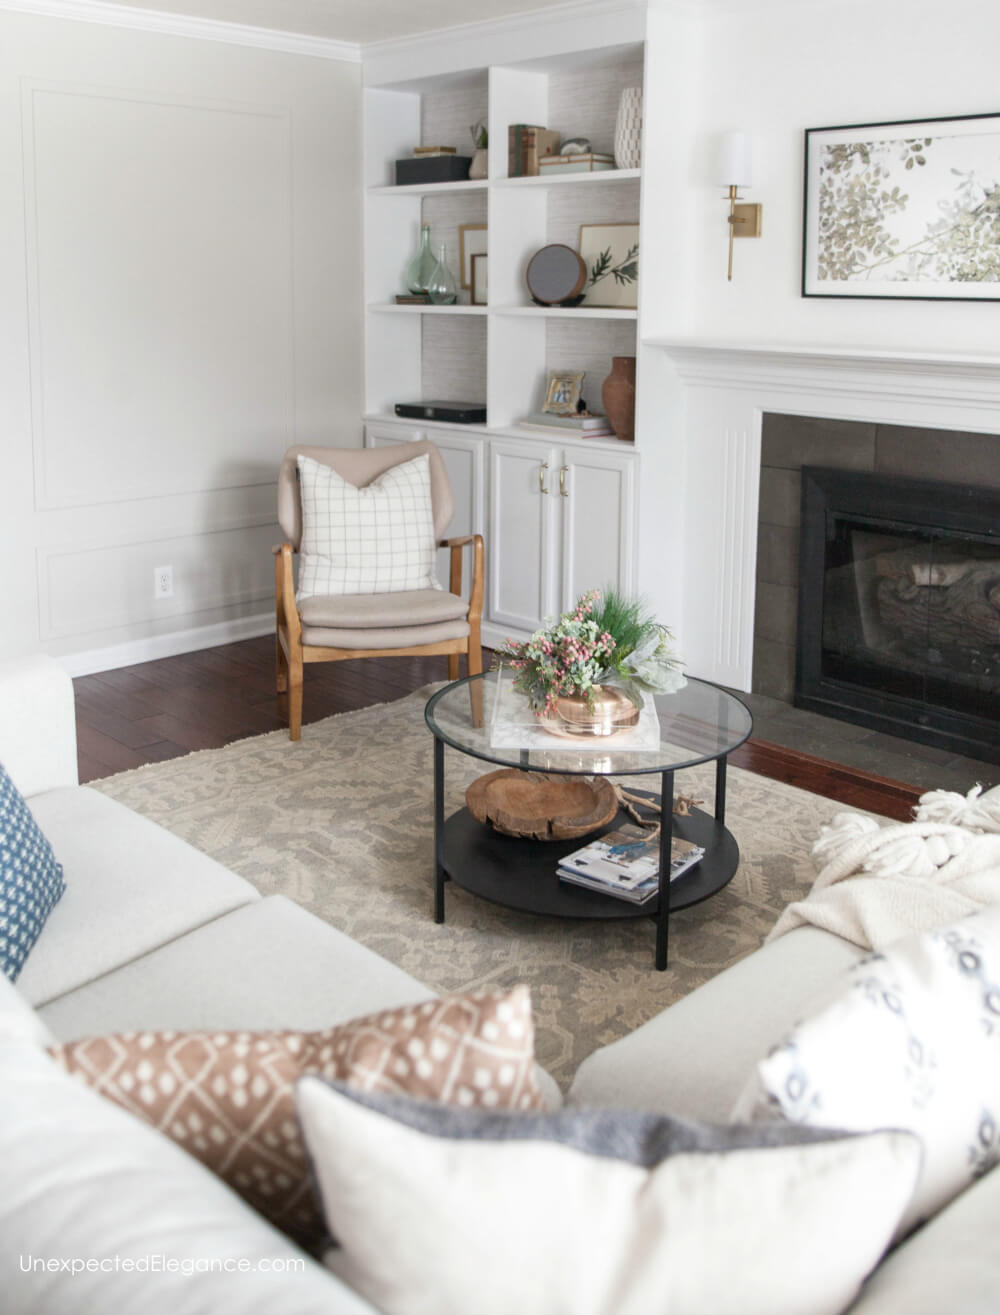 Magnificent How To Choose A Sofa That Fits Your Space And Style Squirreltailoven Fun Painted Chair Ideas Images Squirreltailovenorg